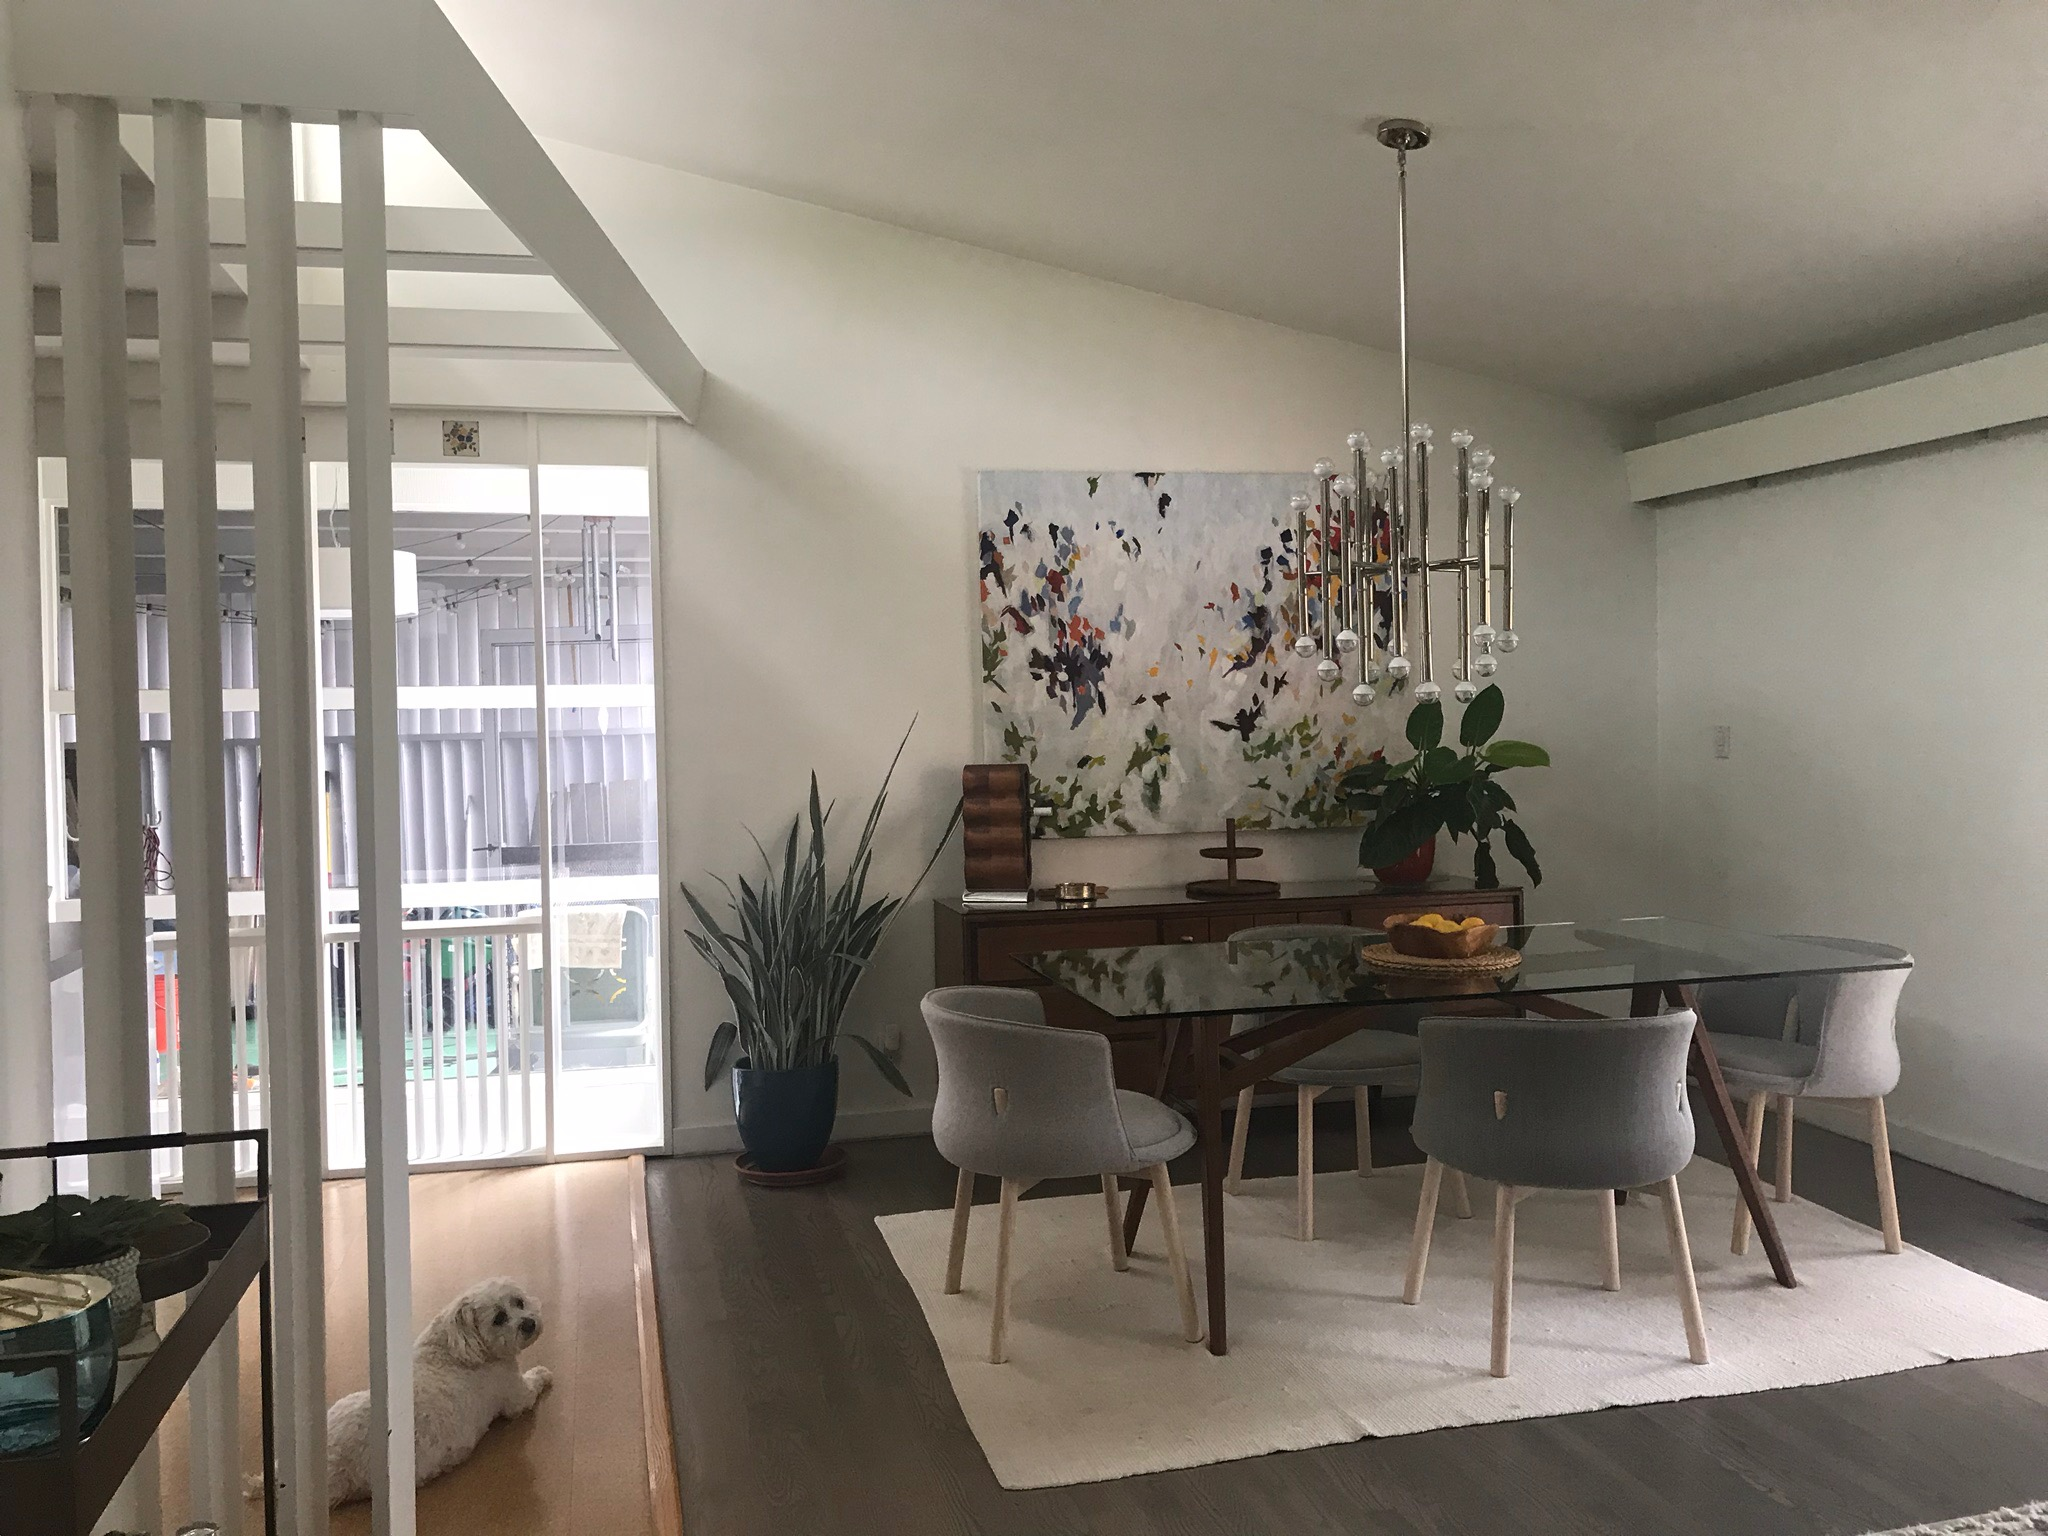 DINING AREA WITH VERTICAL TRANSITION ELEMENTS